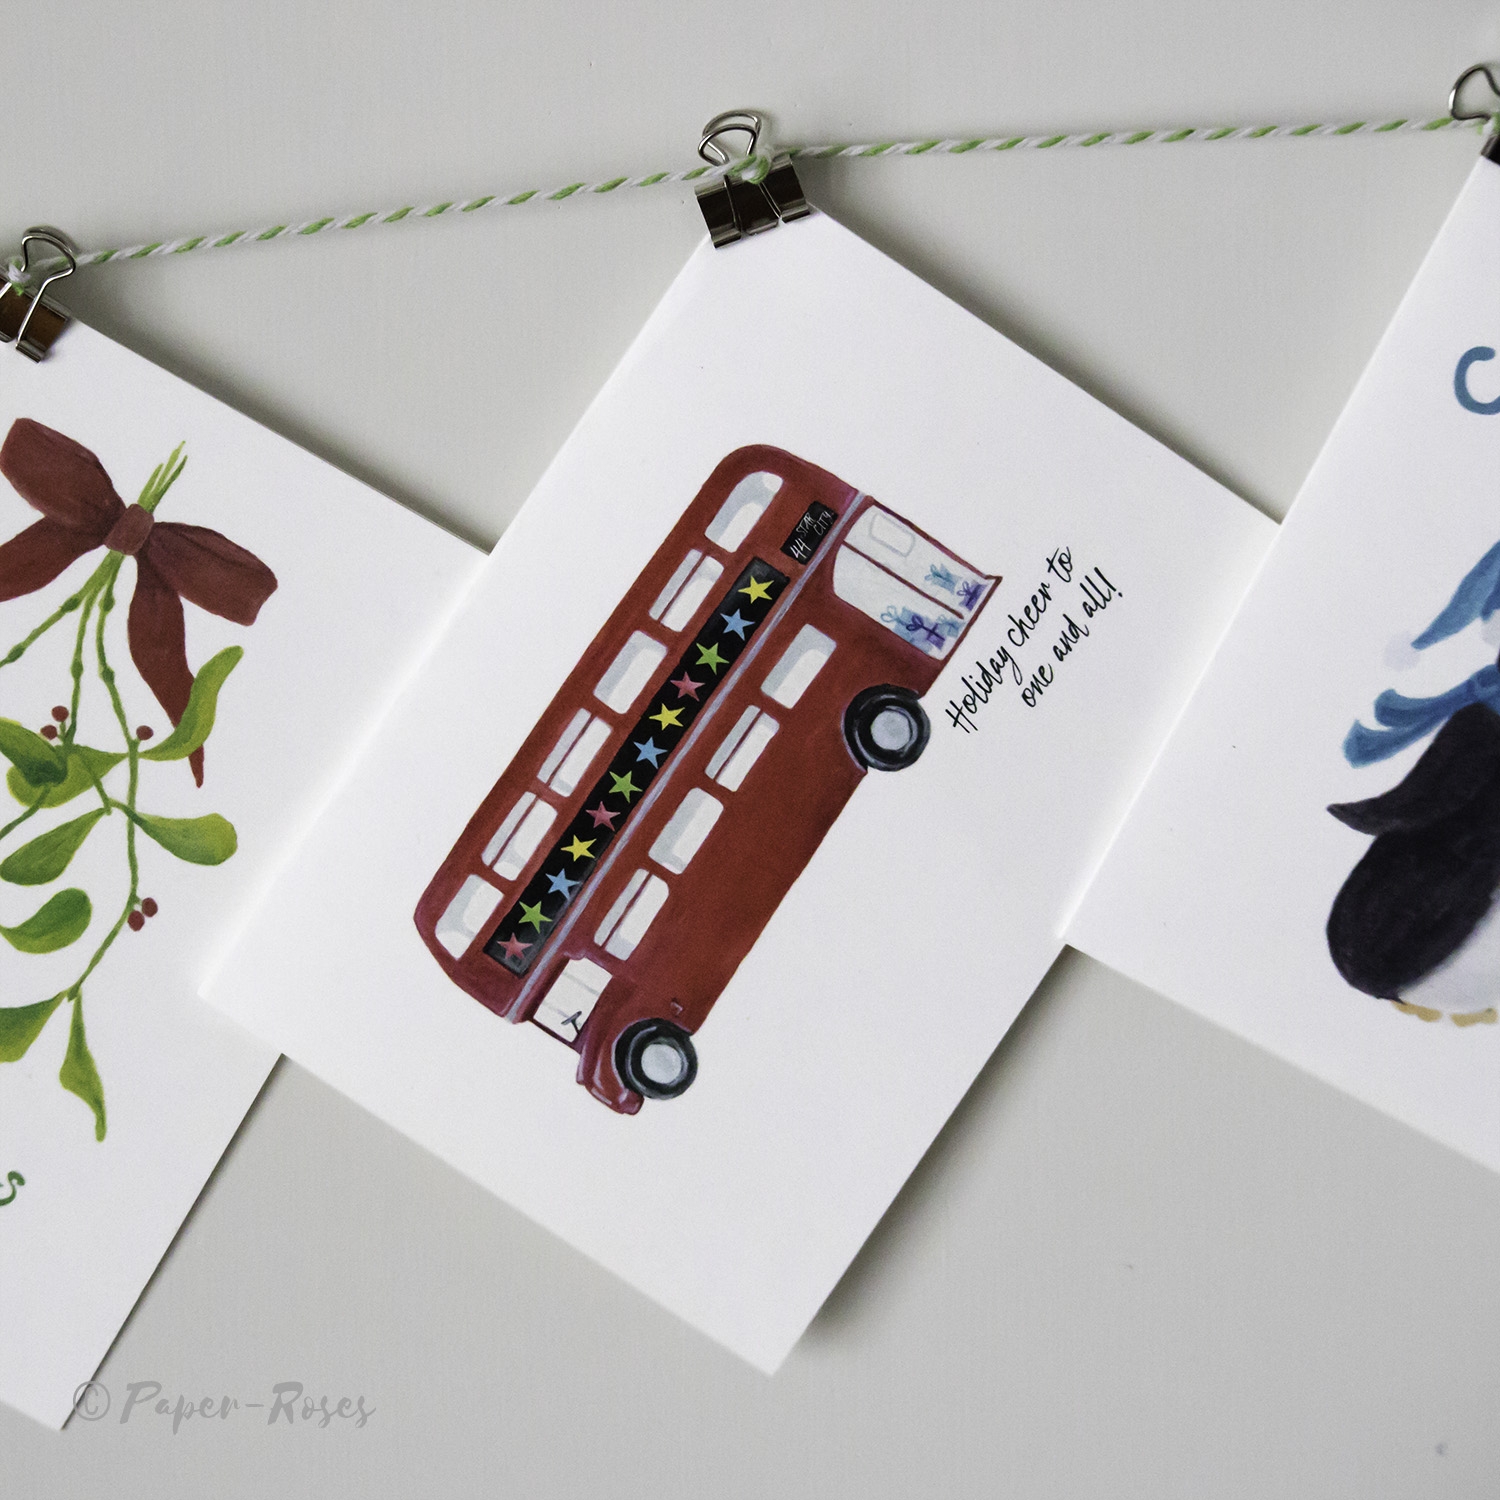 Paper-Roses | Festive shop | Routemaster bus holiday card